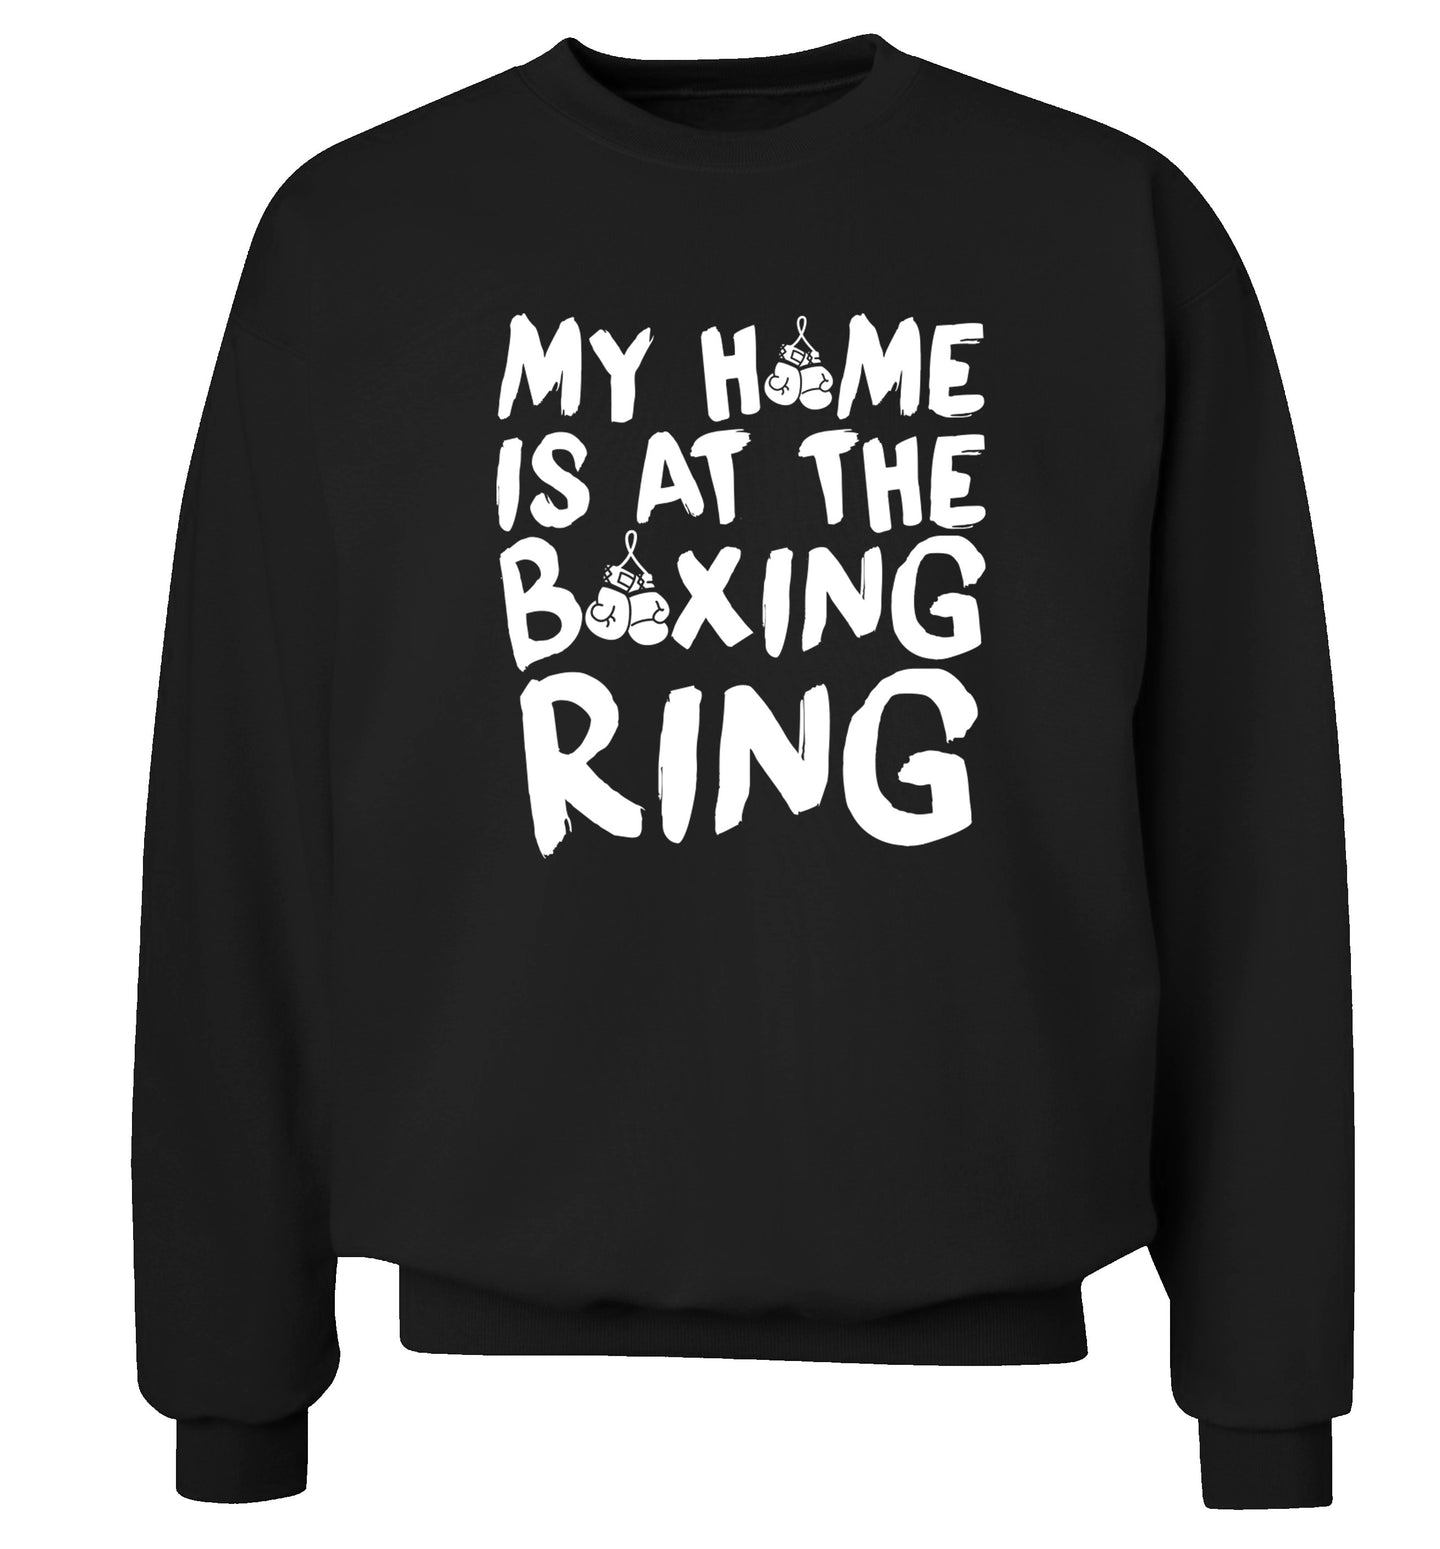 My home is at the boxing ring Adult's unisex black Sweater 2XL